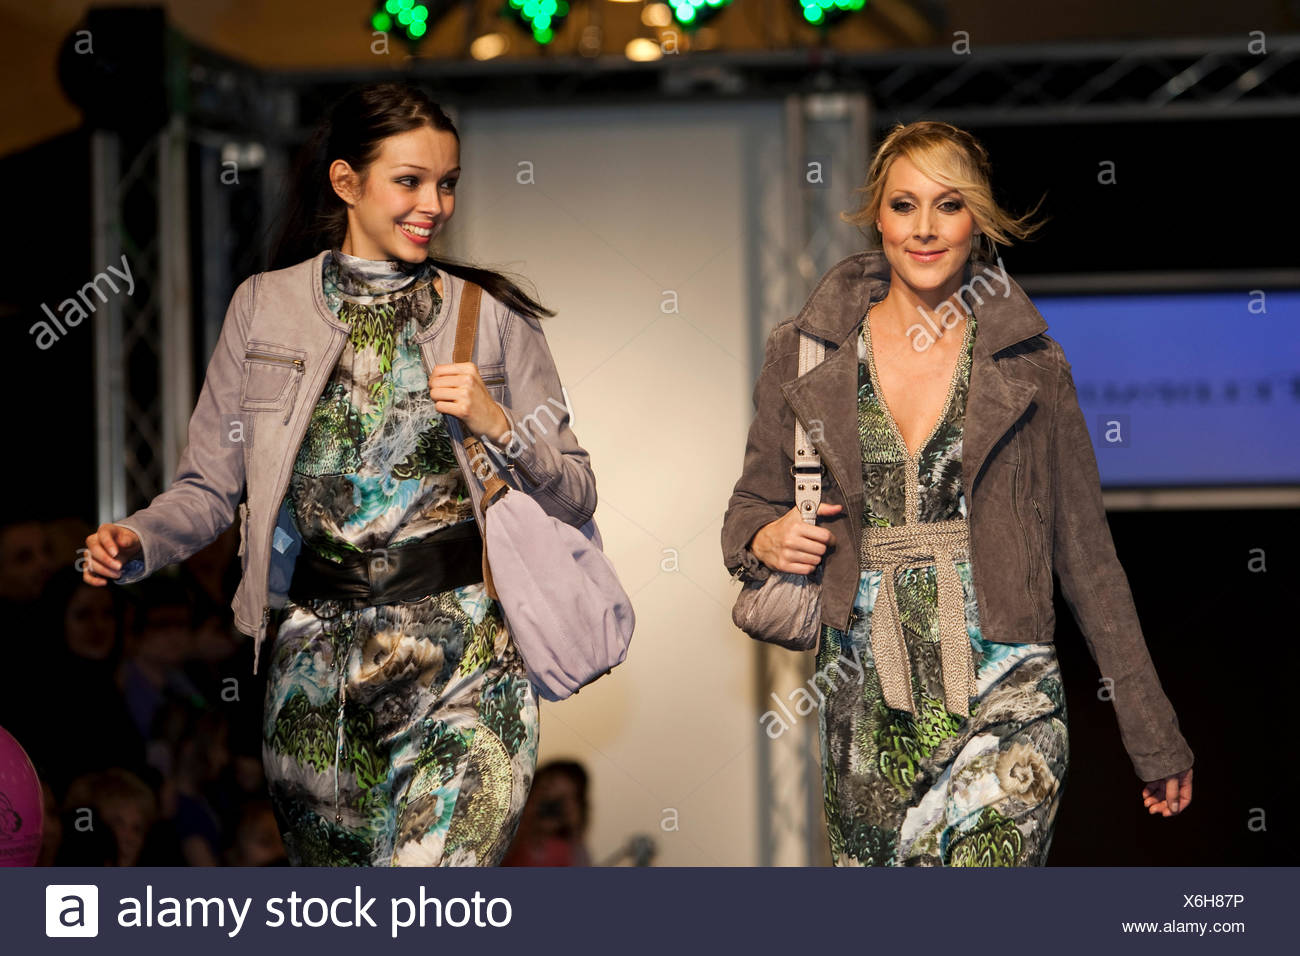 Female models in a fashion show in the Emmencenter shopping center in Emmenbruecke, Lucerne, Switzerland - Stock Image